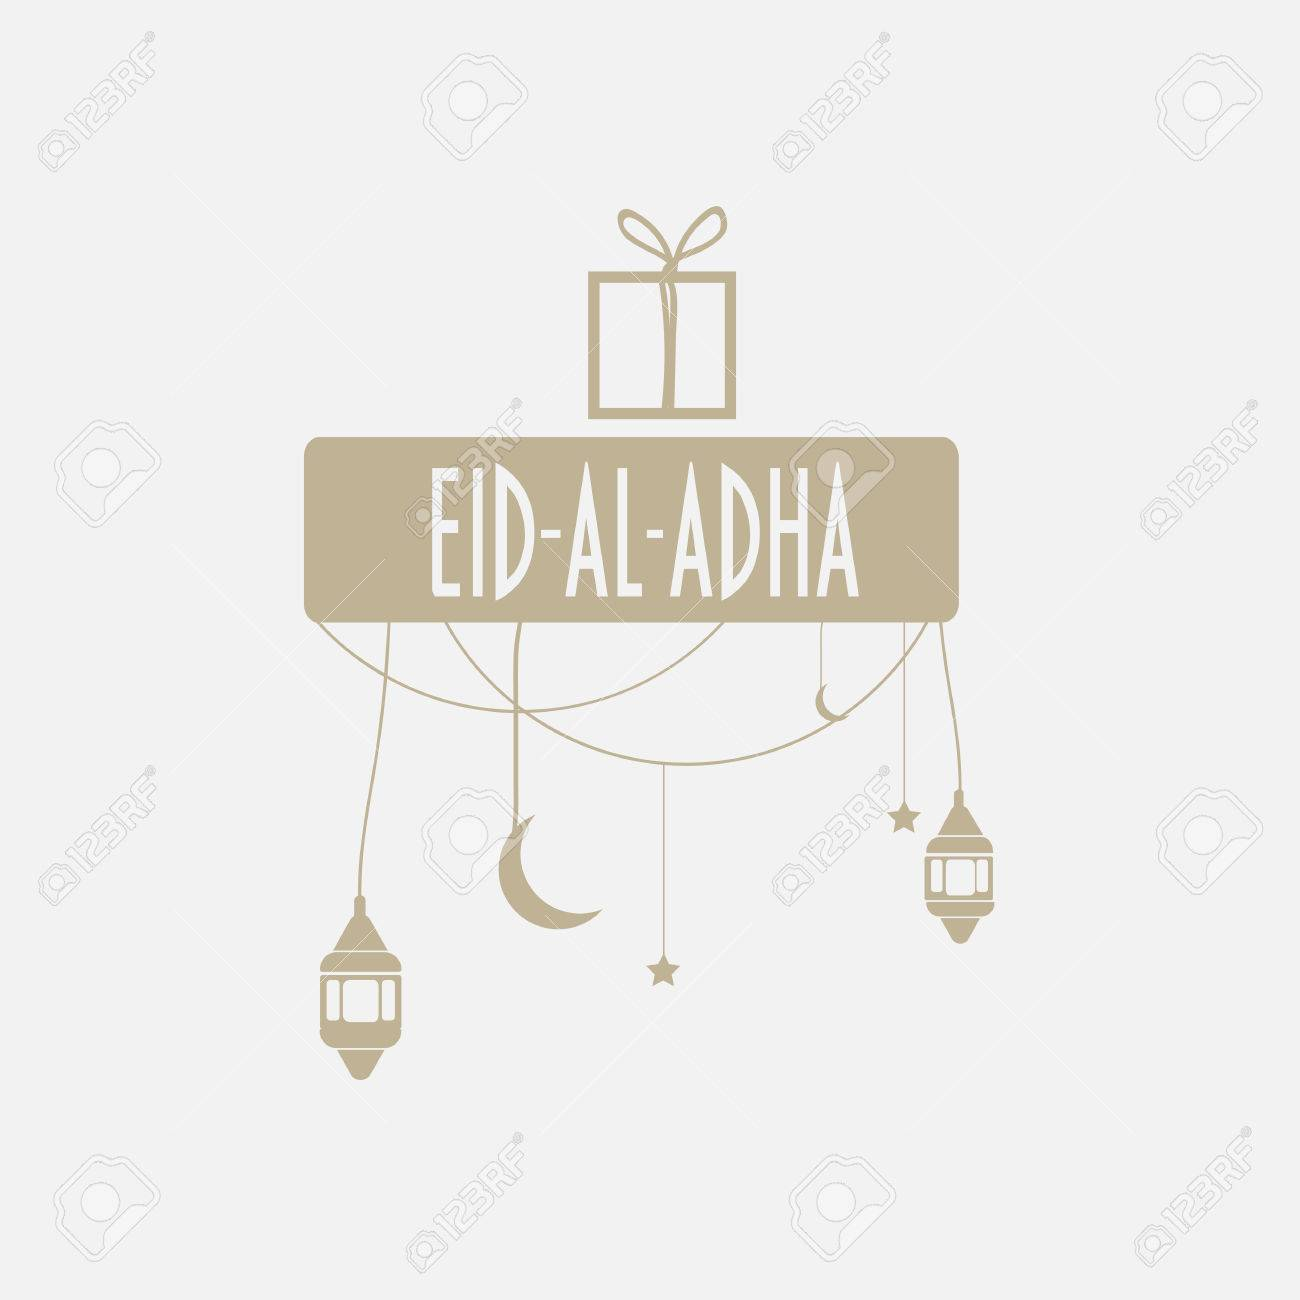 Muslim community festival eid al adha mubarak greeting card stock muslim community festival eid al adha mubarak greeting card with ramadan lanterns moon and stars m4hsunfo